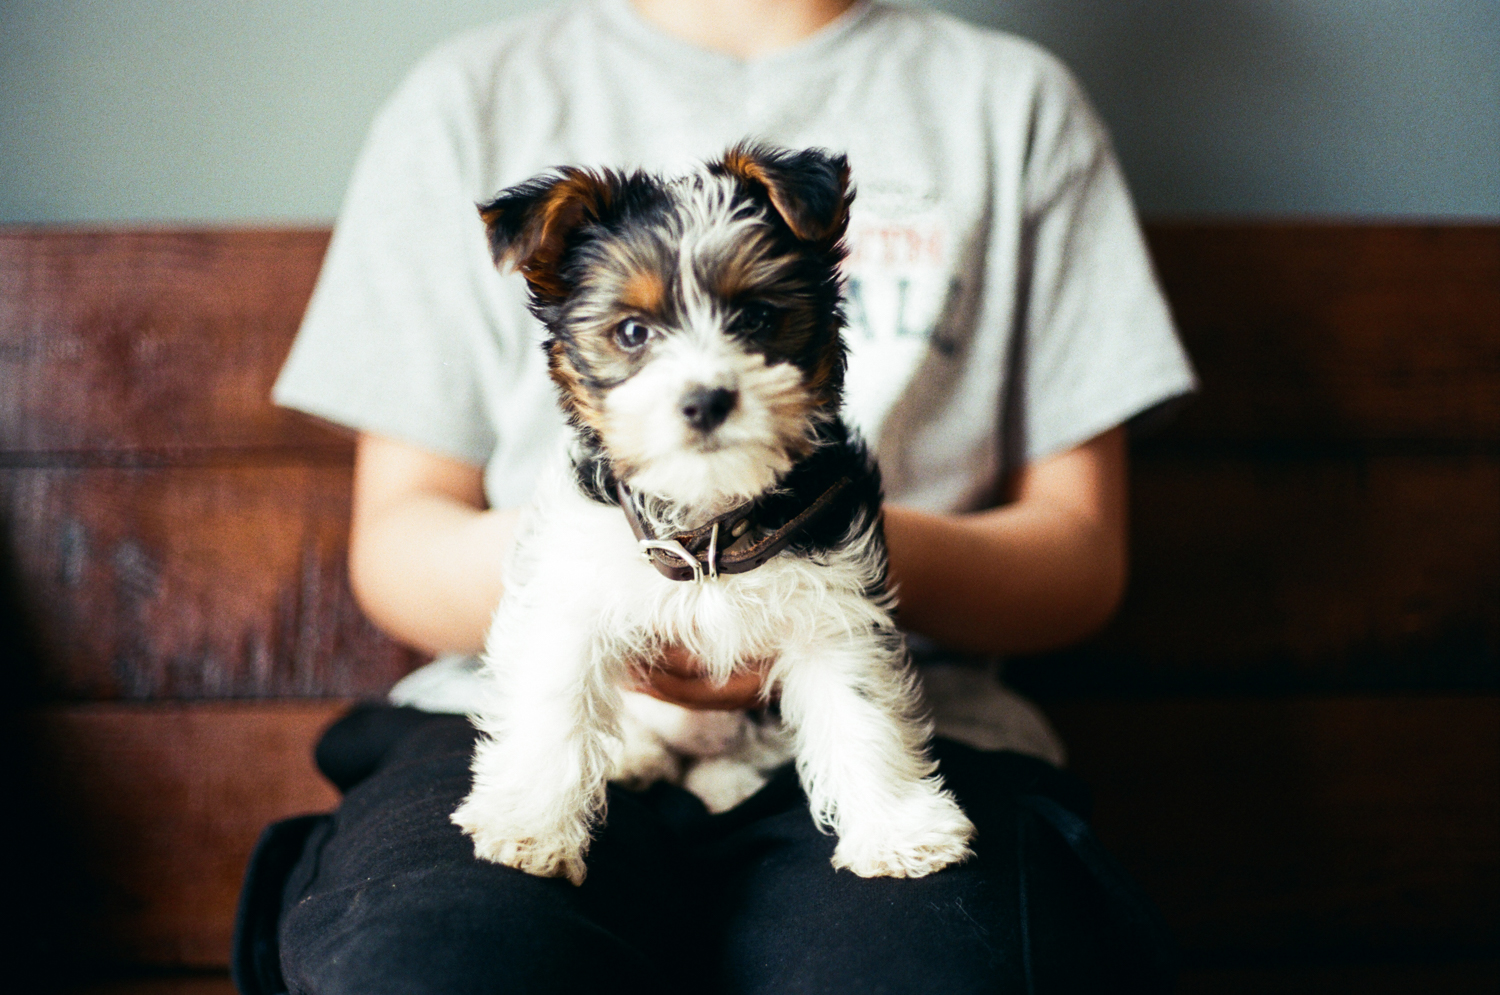 Boy and Yorkie puppy